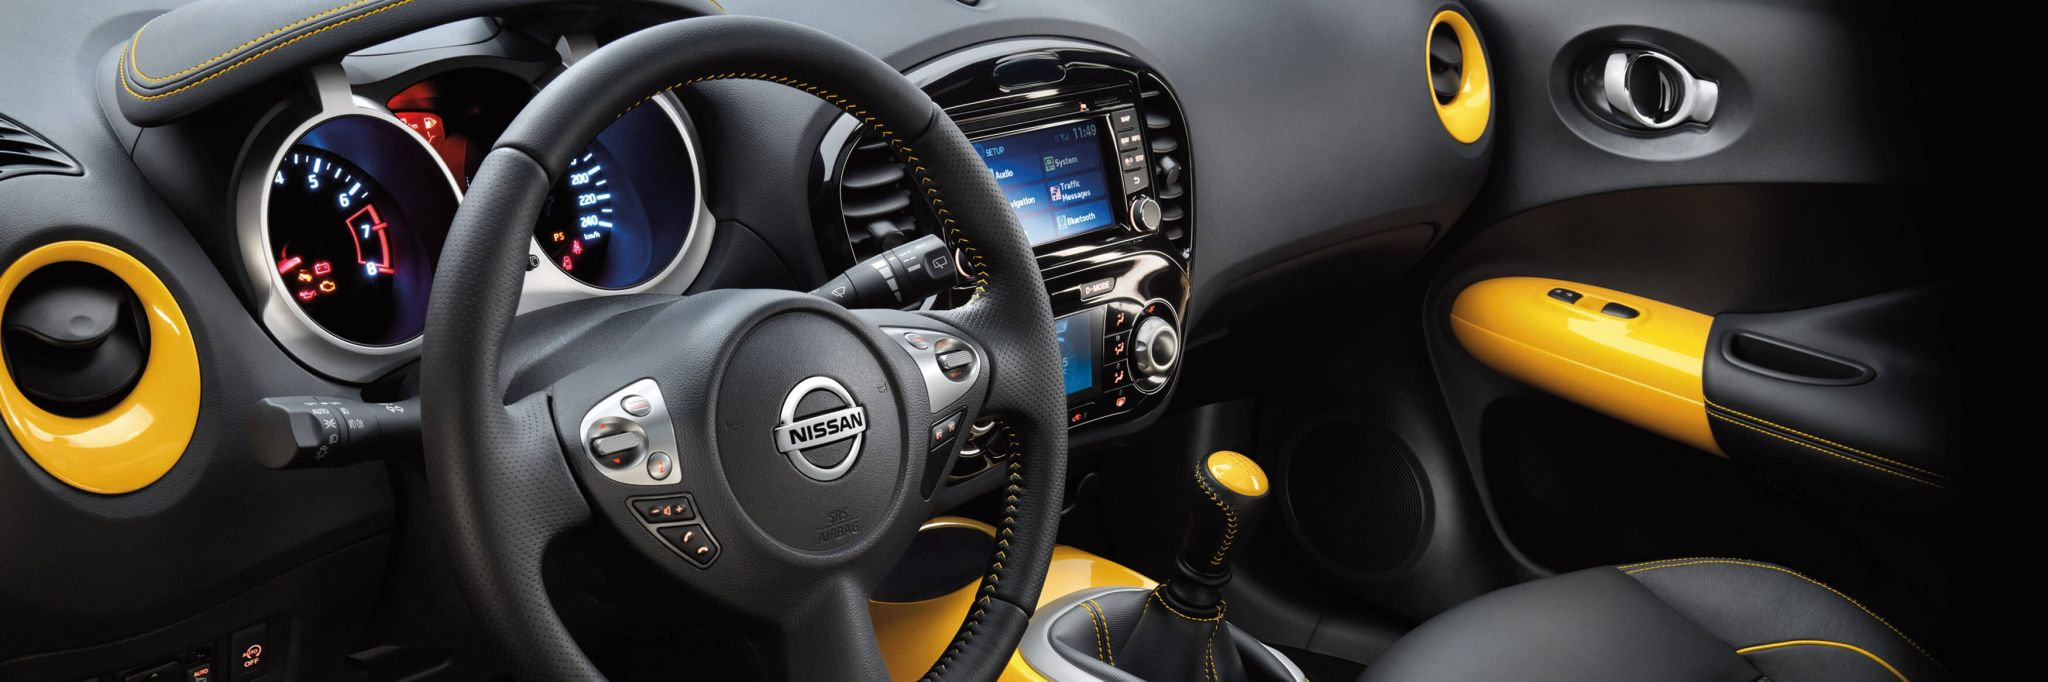 Nissan juke interieur bochane groep for Interieur nissan juke